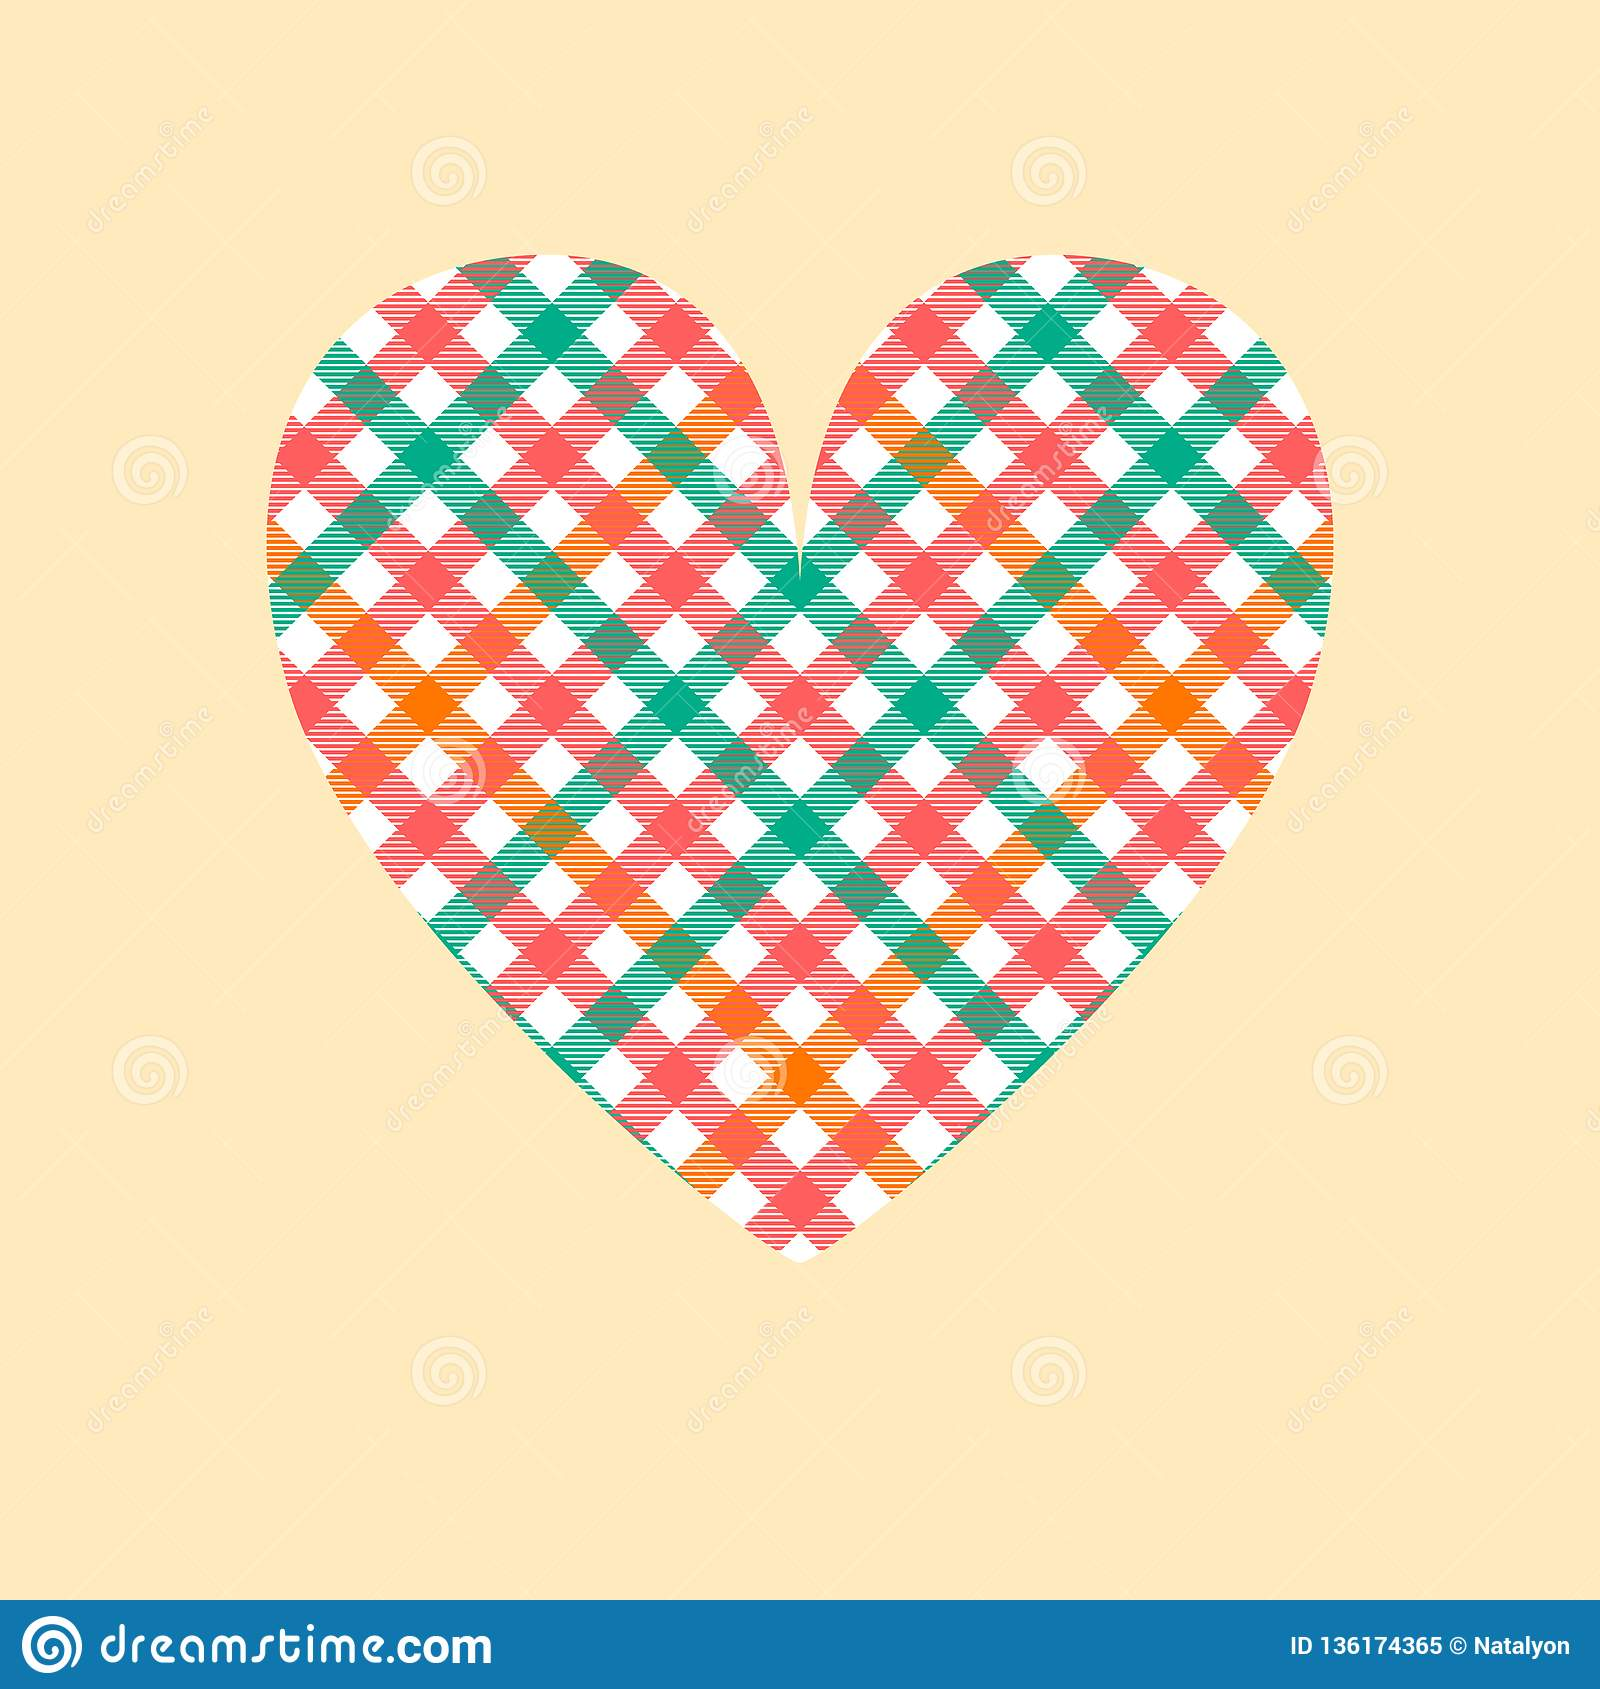 Pastel colored tartan checkered heart on beige card template, vector